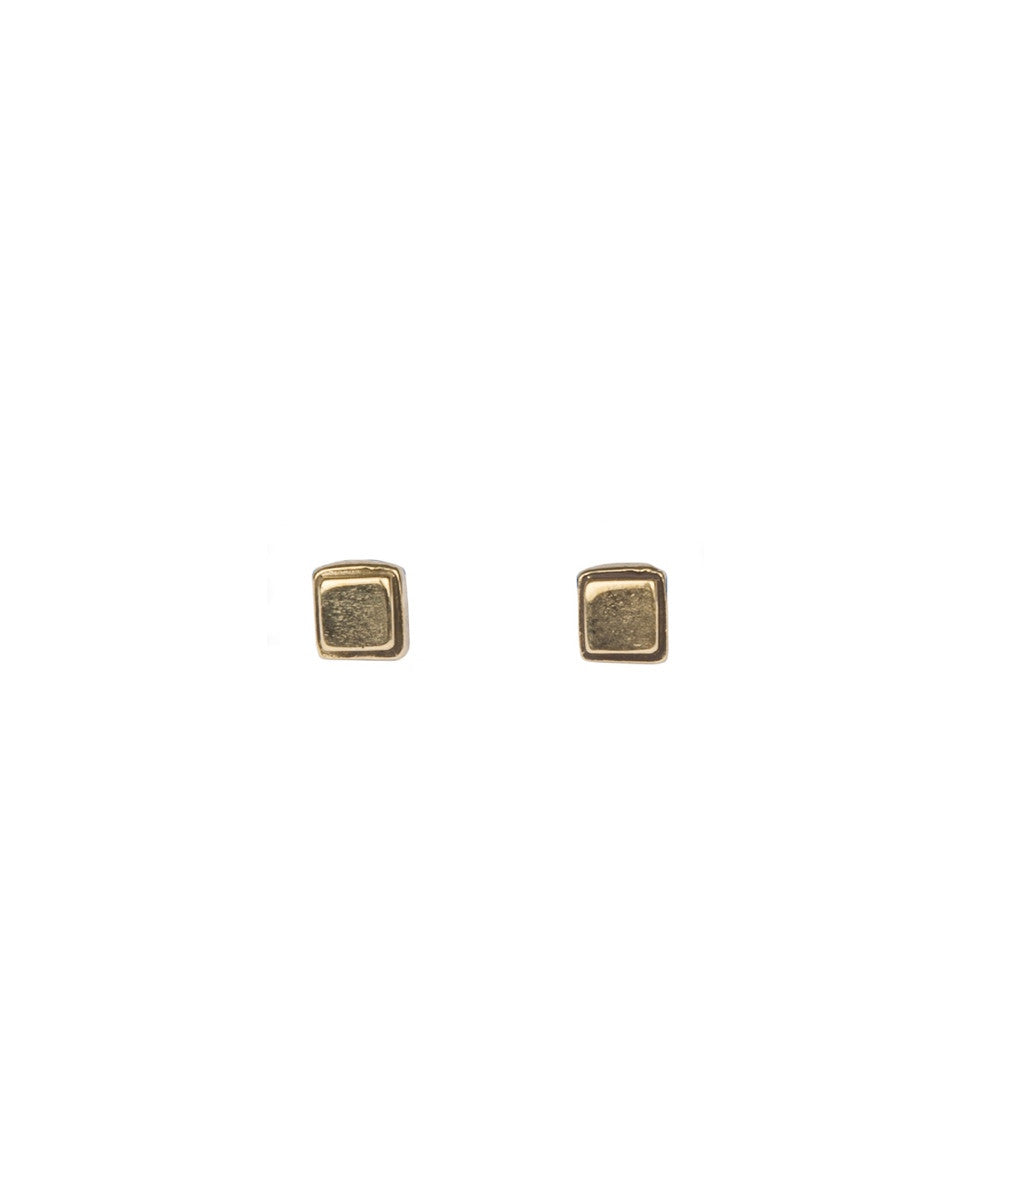 Square in Square Stud